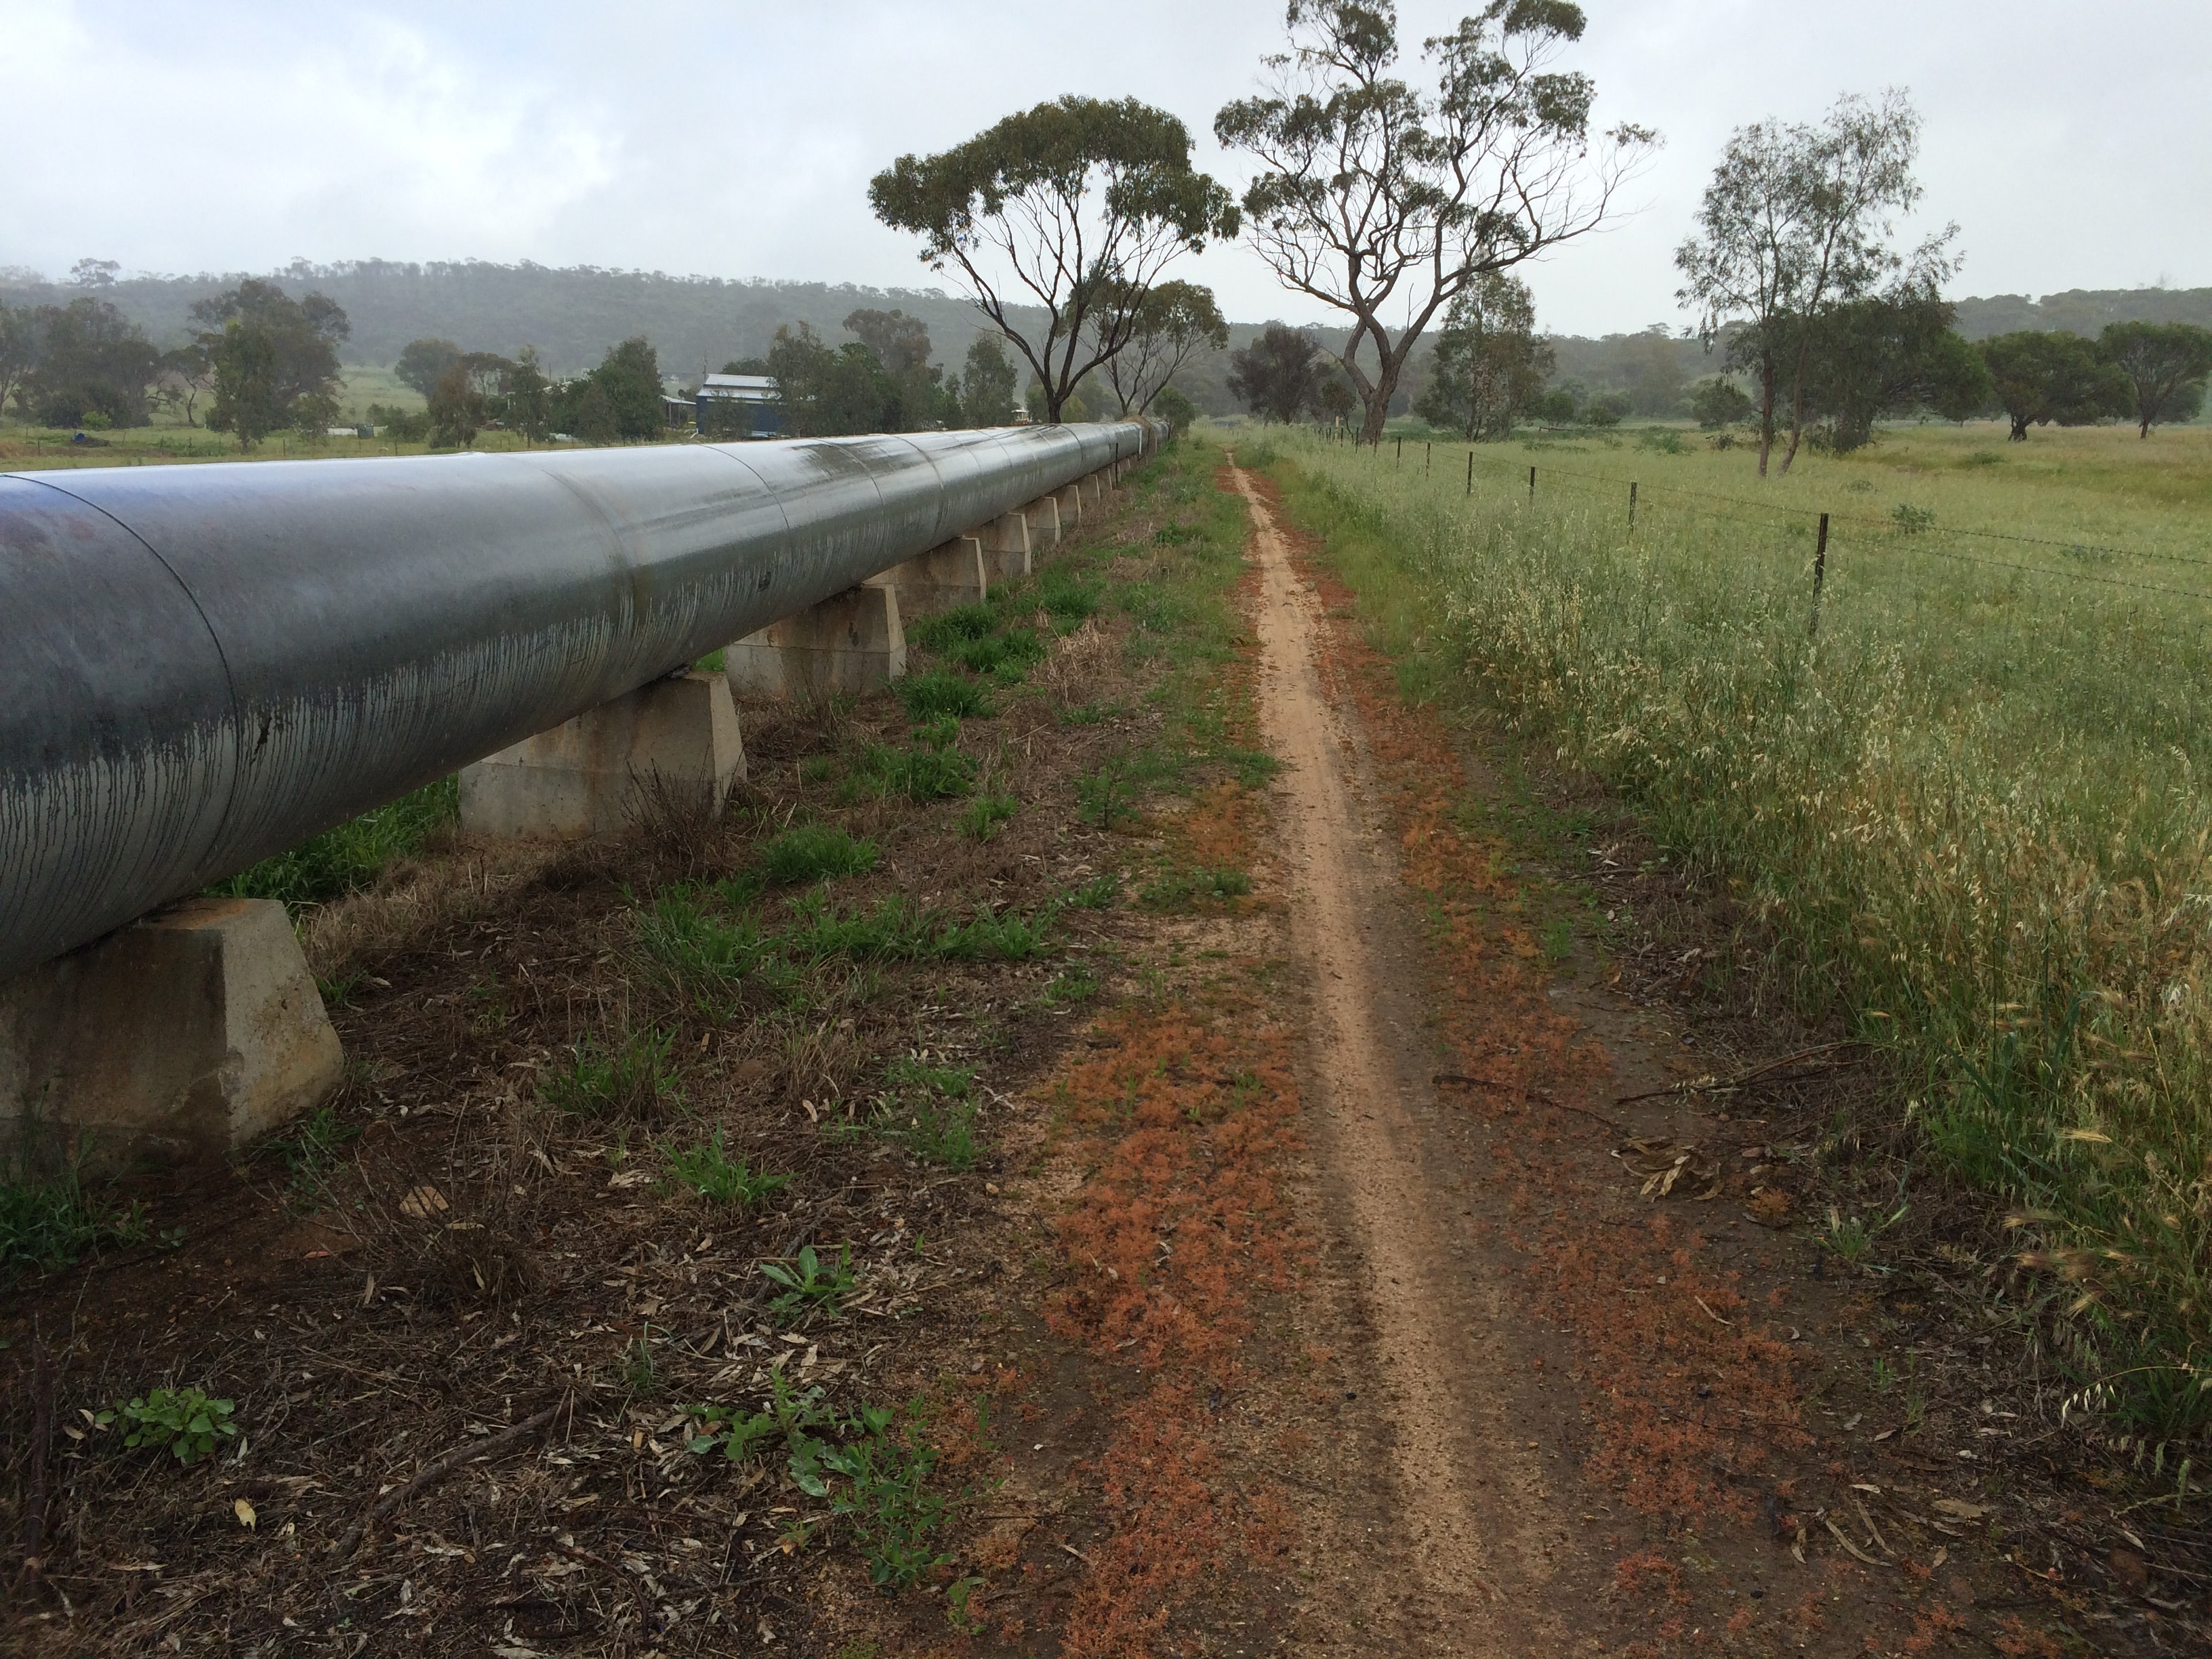 Pipeline and trail near Northam